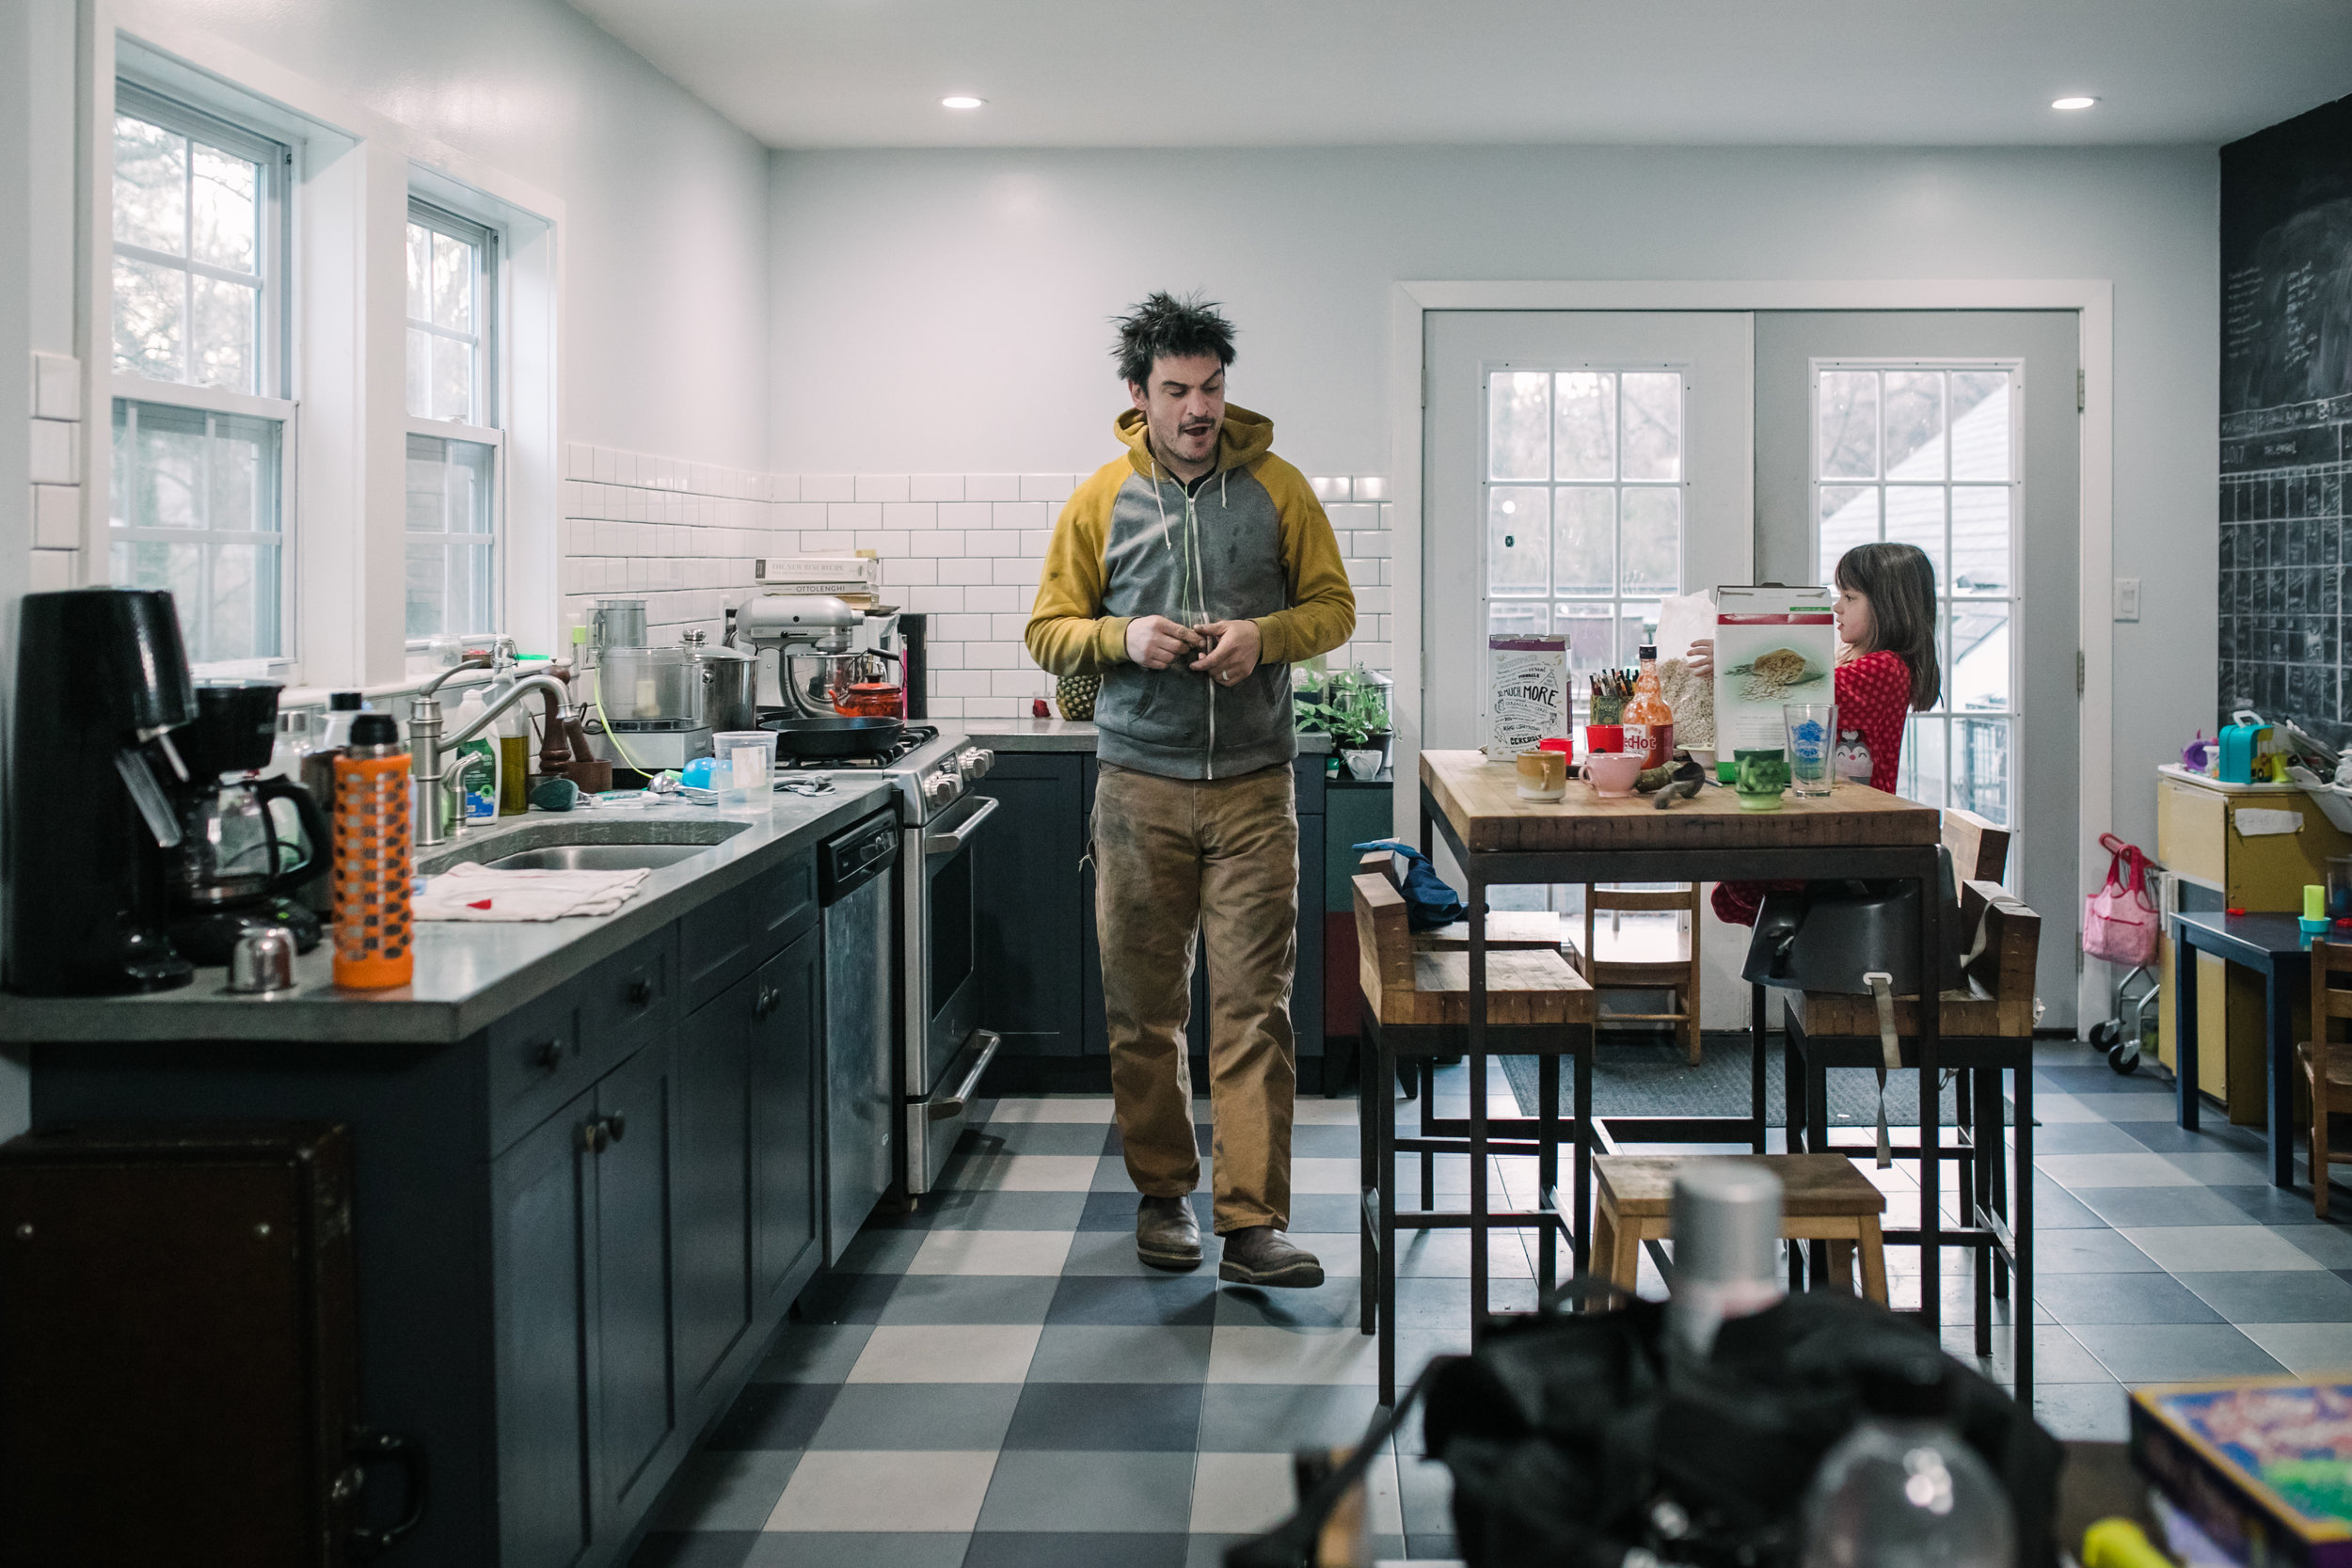 Man yawns in a kitchen and a girl eats breakfast